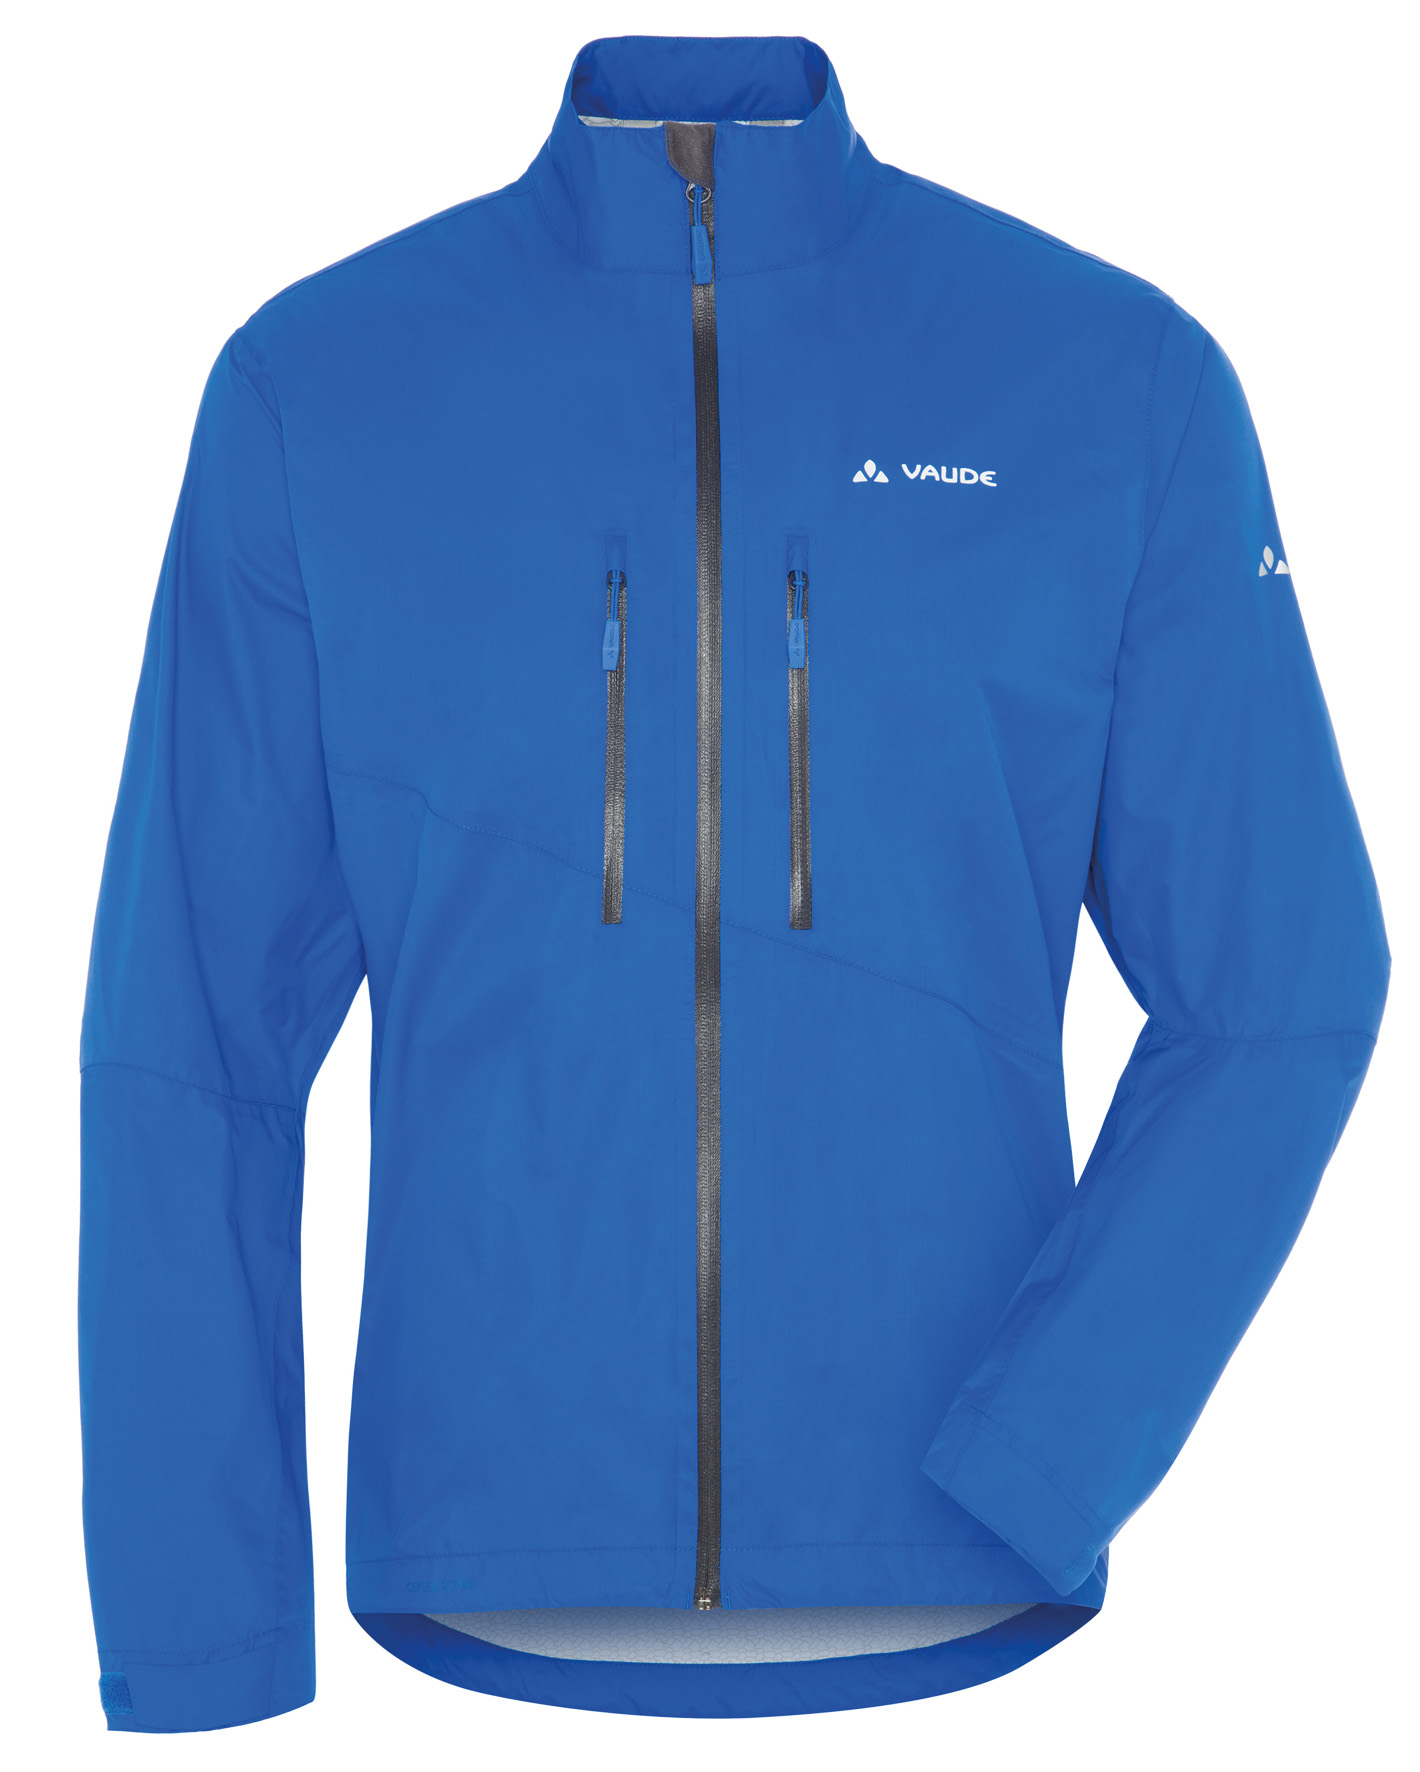 VAUDE Men´s Tremalzo Rain Jacket hydro blue Größe S - schneider-sports